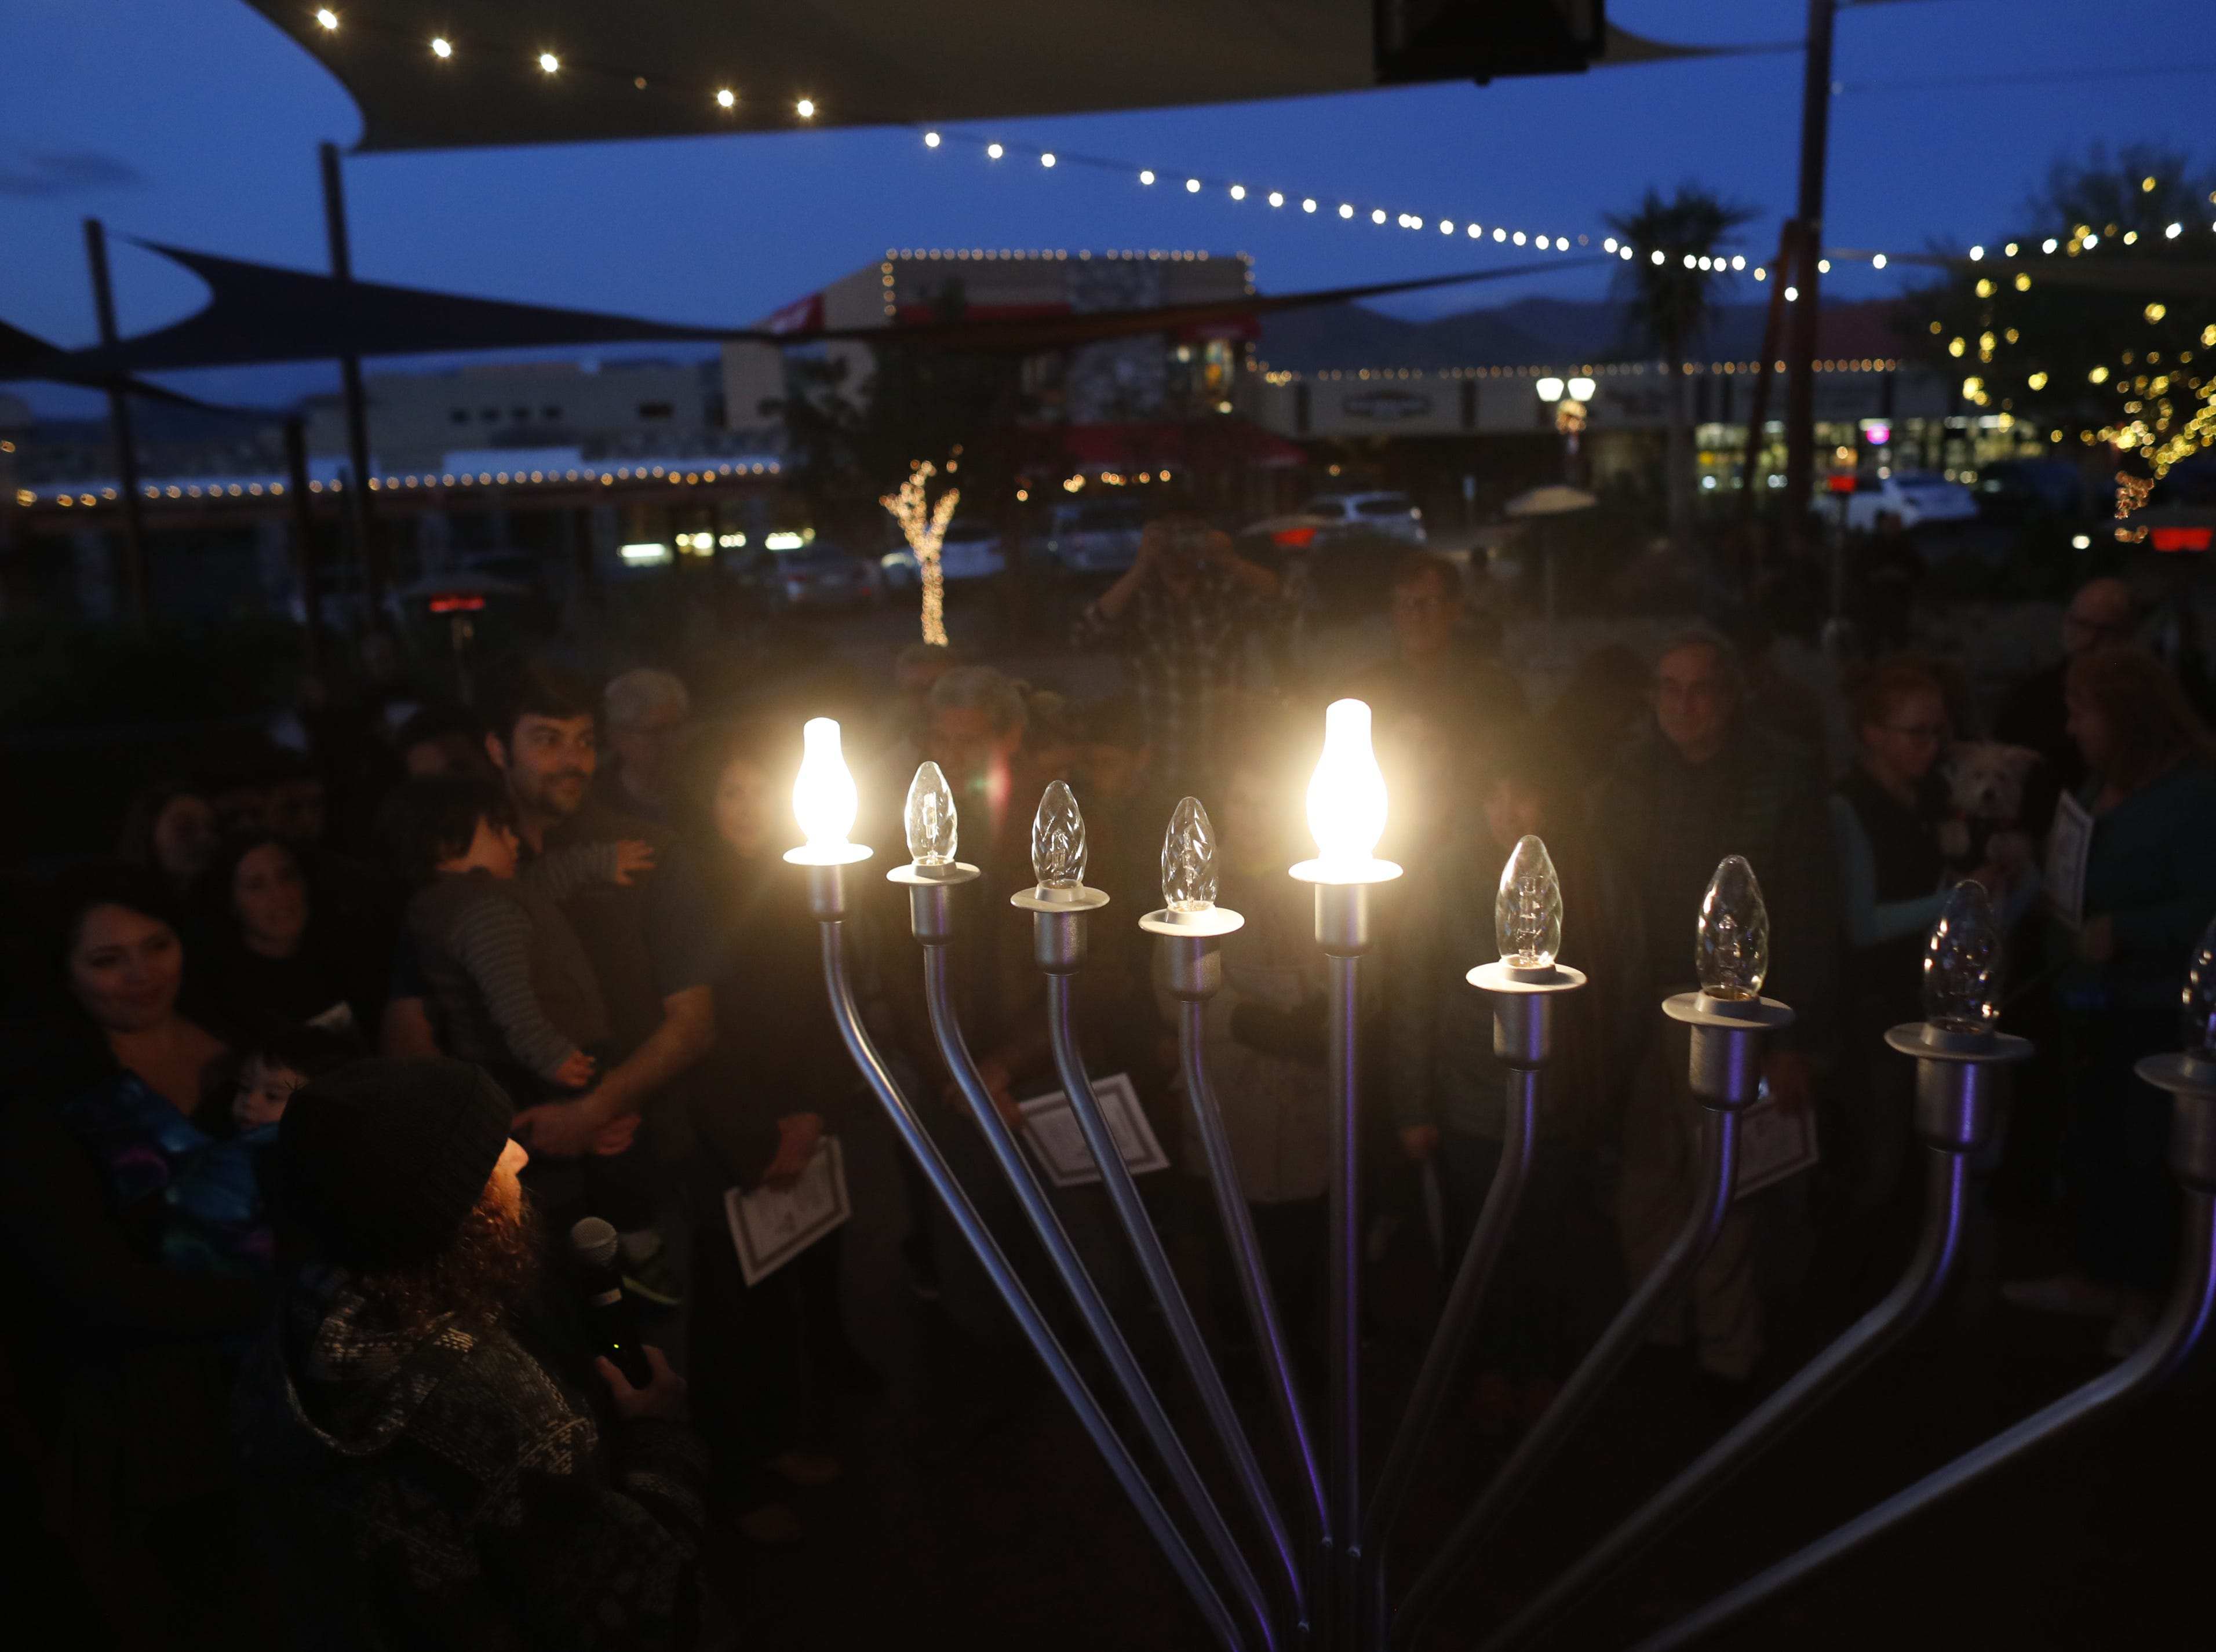 The menorah lights up during a Menorah Lighting Ceremony on the first night of Hanukkah at Carefree Desert Gardens in Carefree, Ariz. on December 2, 2018.